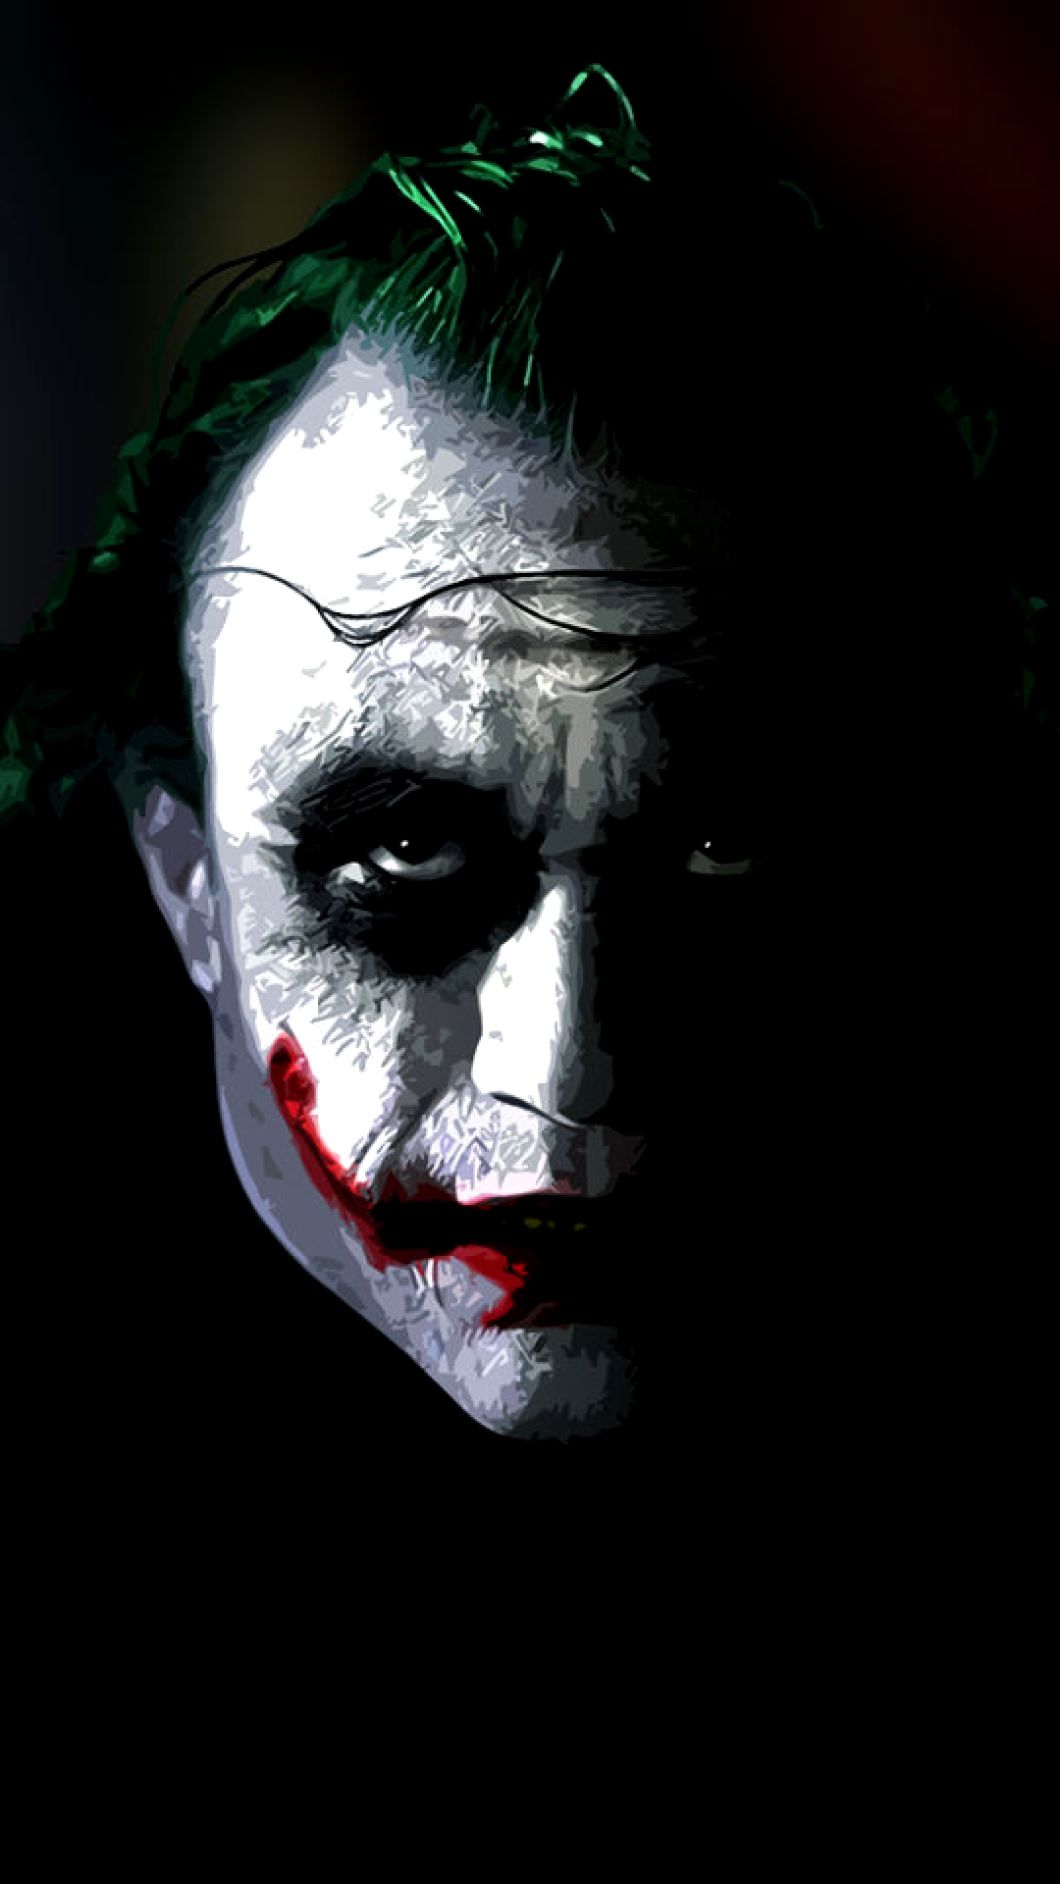 Joker Wallpaper 4k Mobile Download Gallery Joker Wallpapers Joker Pics Joker Images